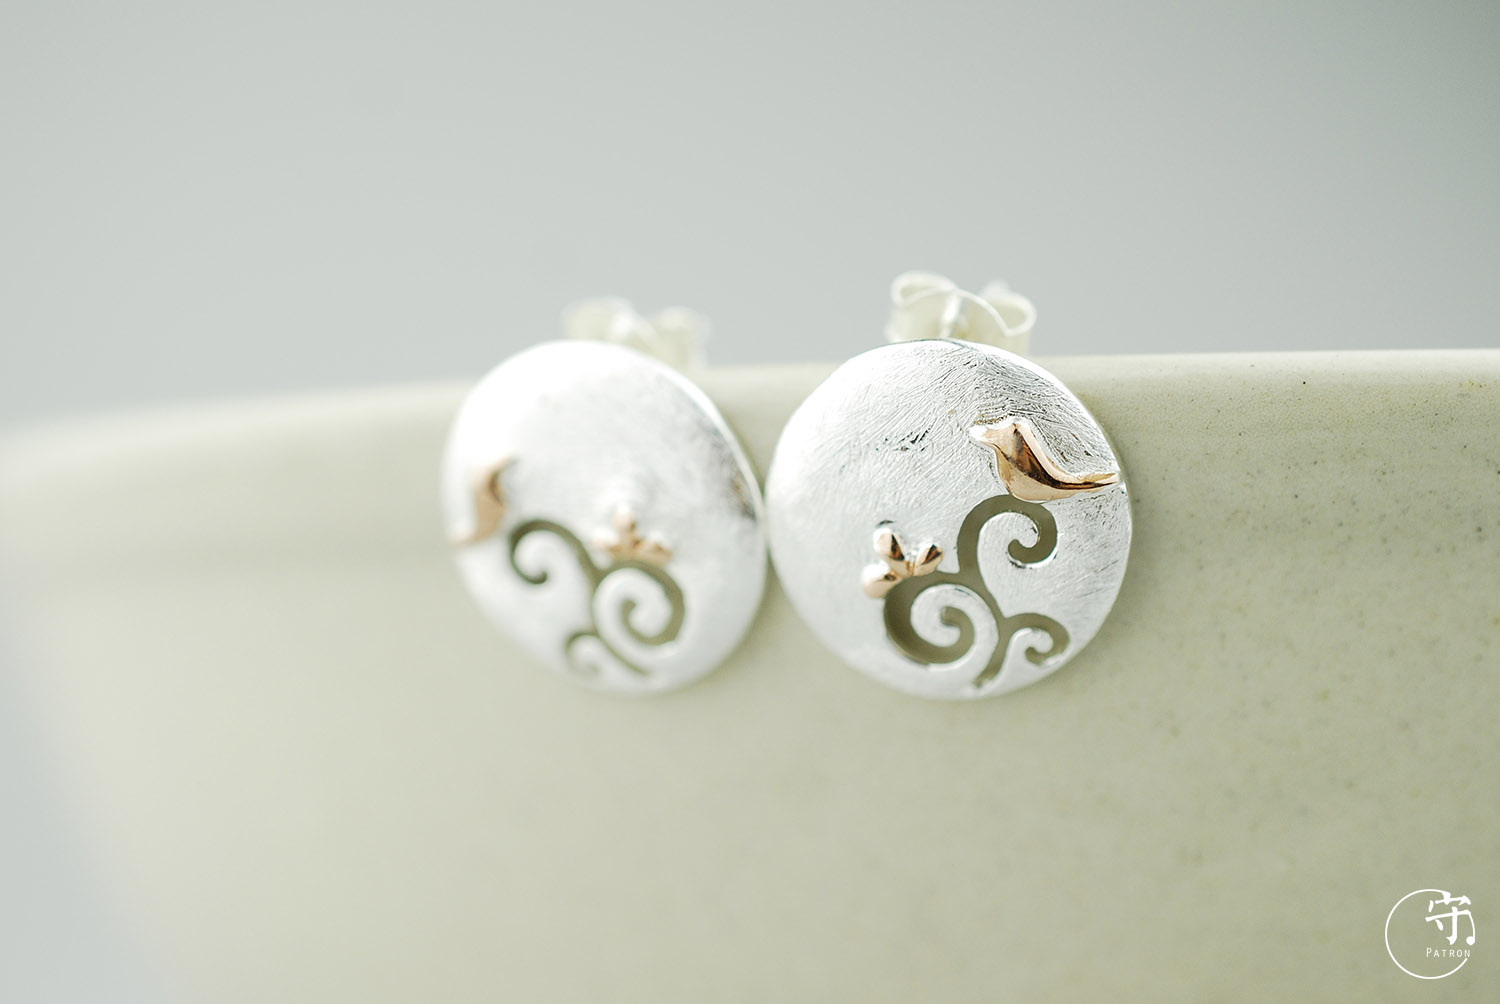 Exclusive Handmade Round Hollow Out Golden Birds on Tree Women 925 Sliver Earrings - Wishbop.com